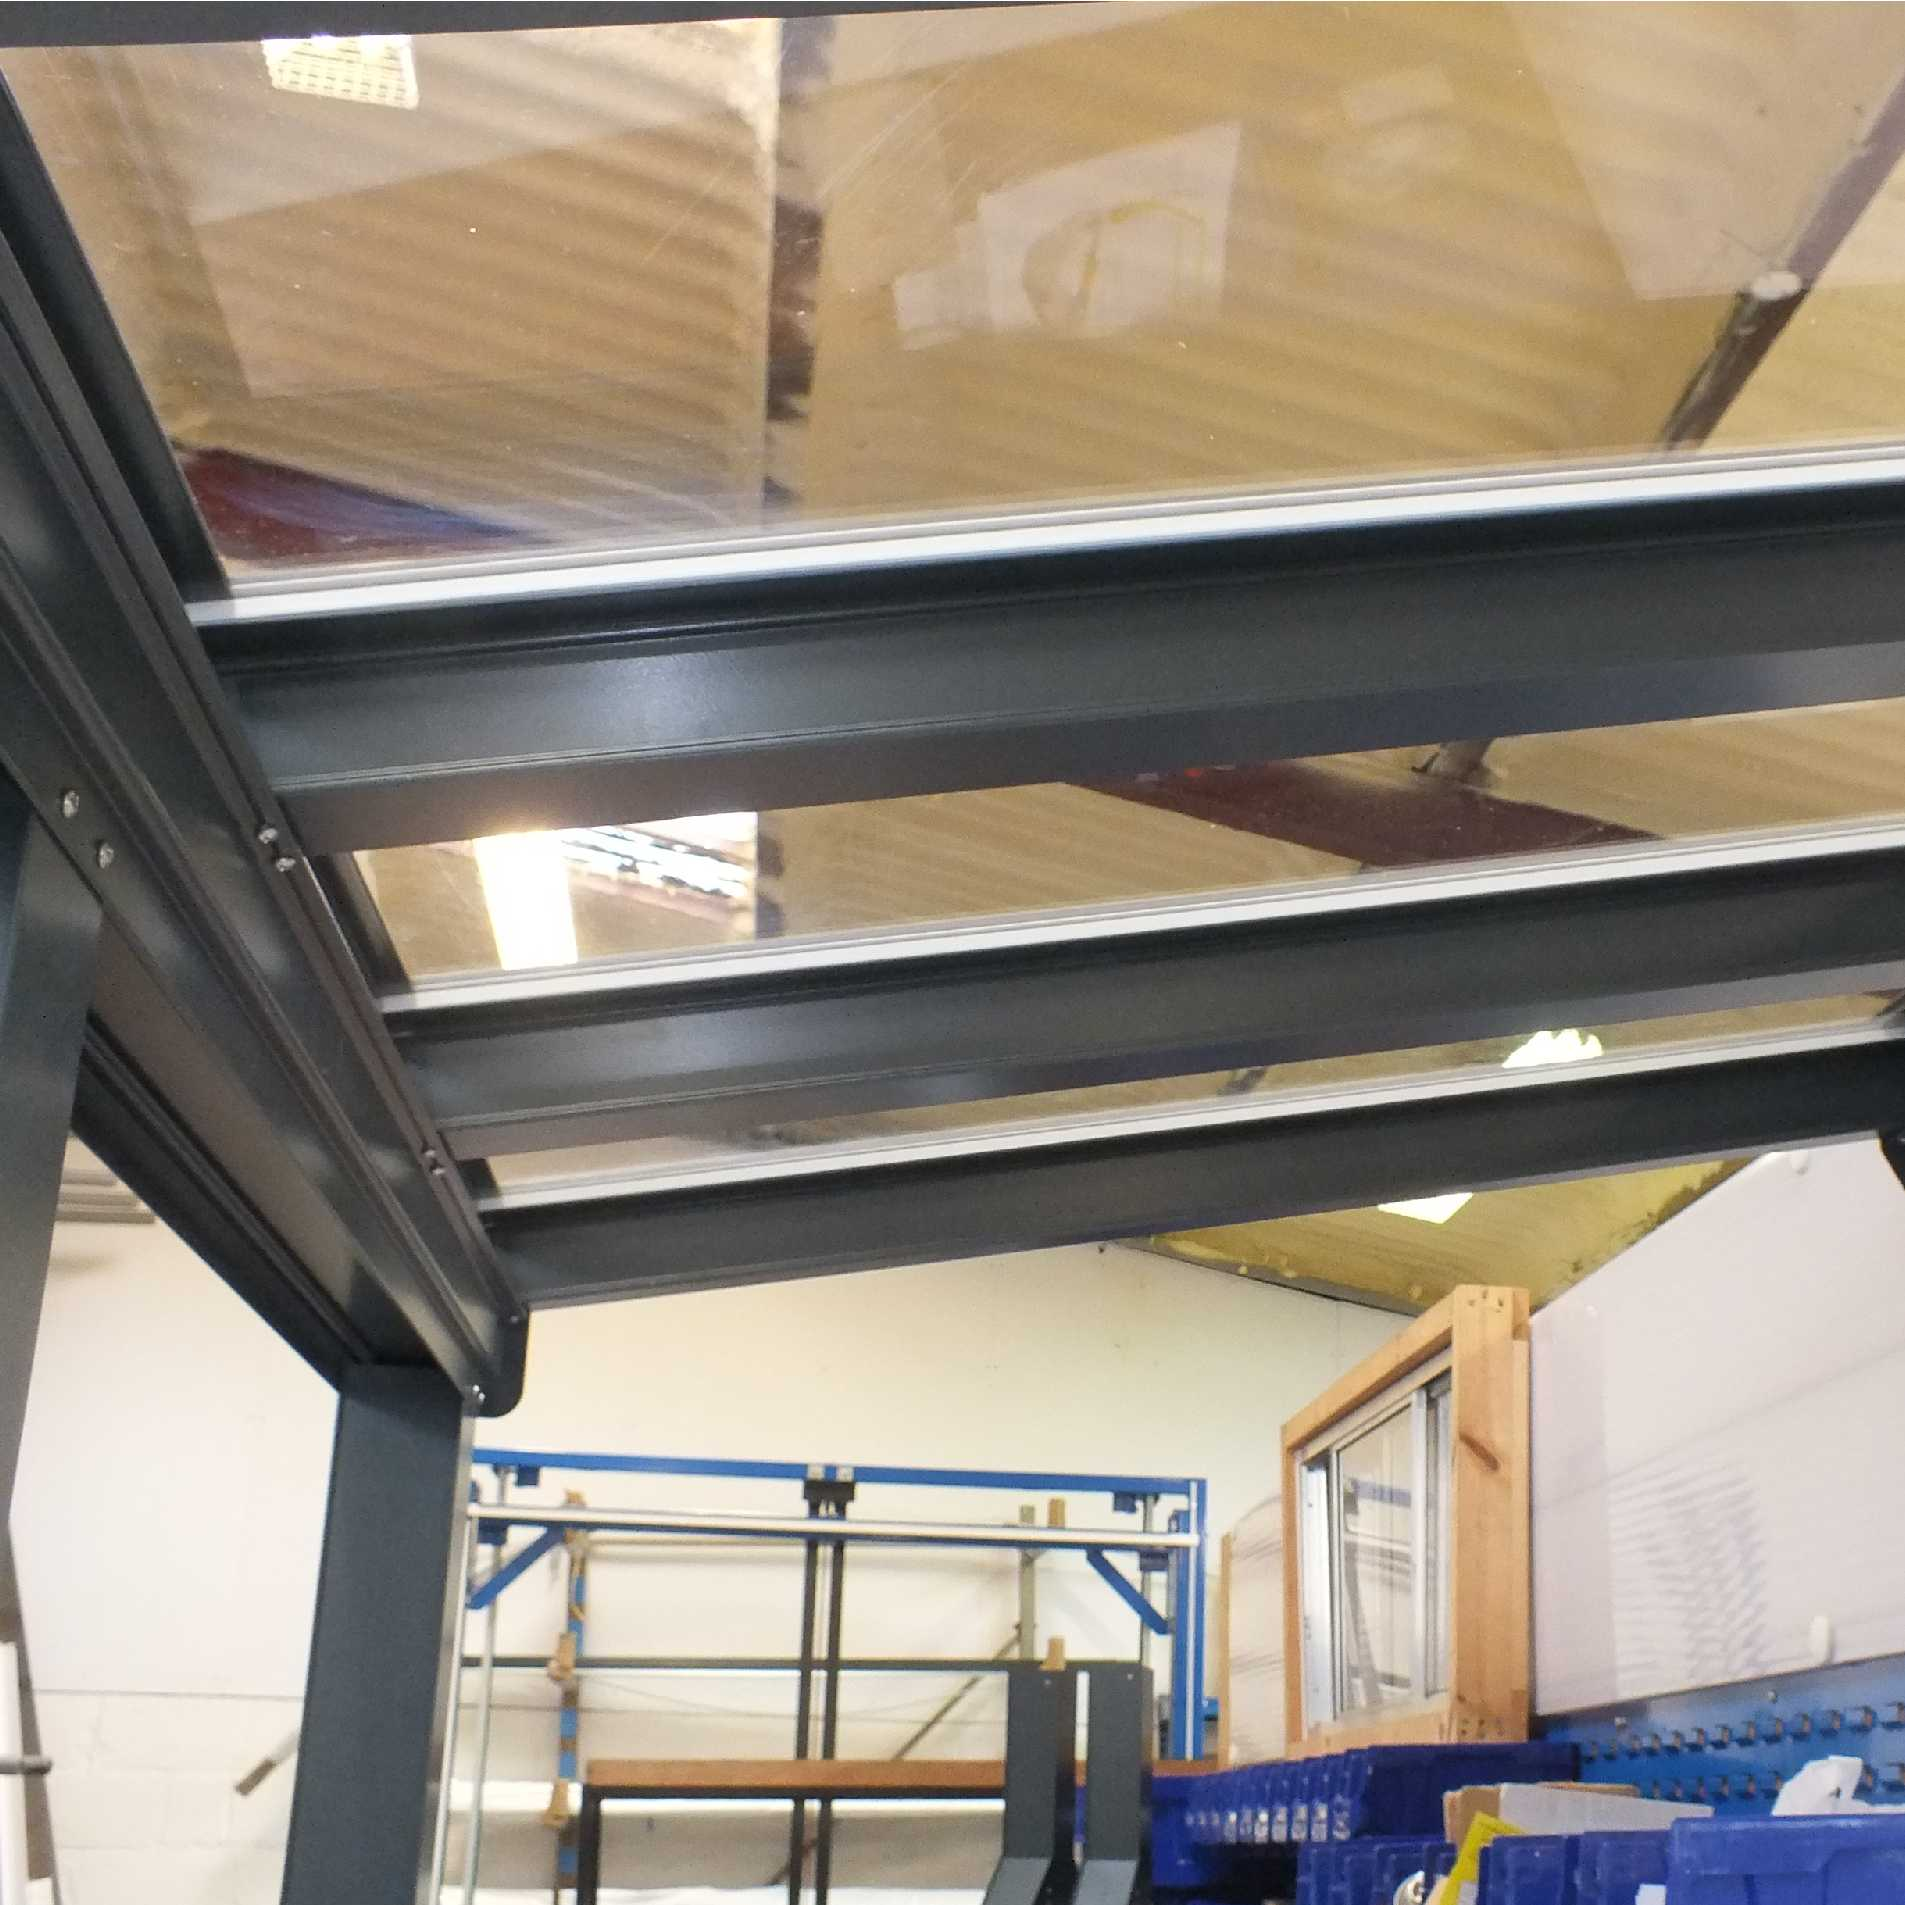 Great deals on Omega Smart Lean-To Canopy, Anthracite Grey, 6mm Glass Clear Plate Polycarbonate Glazing - 7.7m (W) x 3.0m (P), (4) Supporting Posts